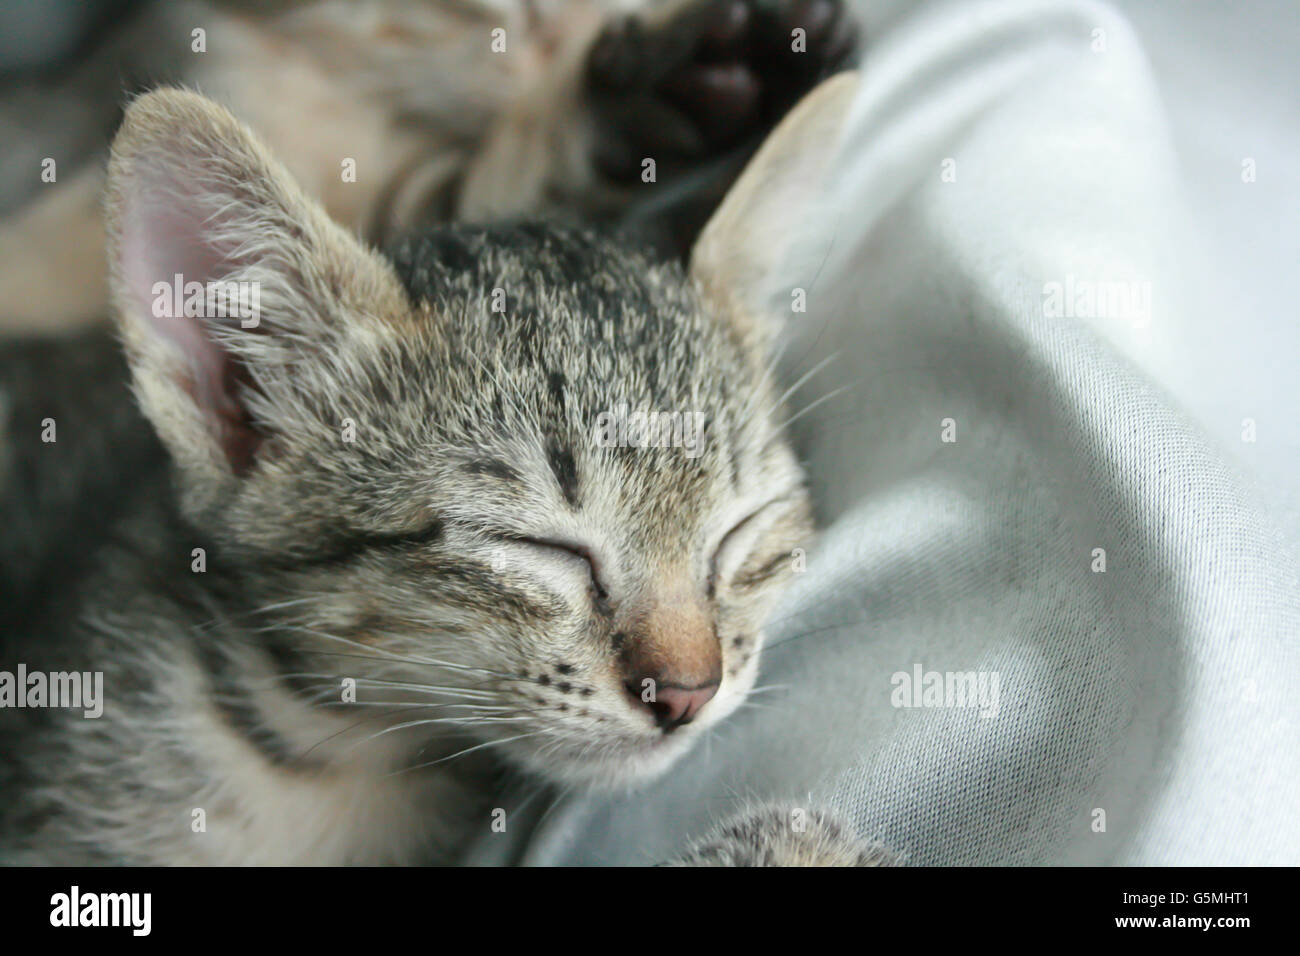 Adorable Funny Cute Kitten Cat Close Eye Sleep Tight With Brother